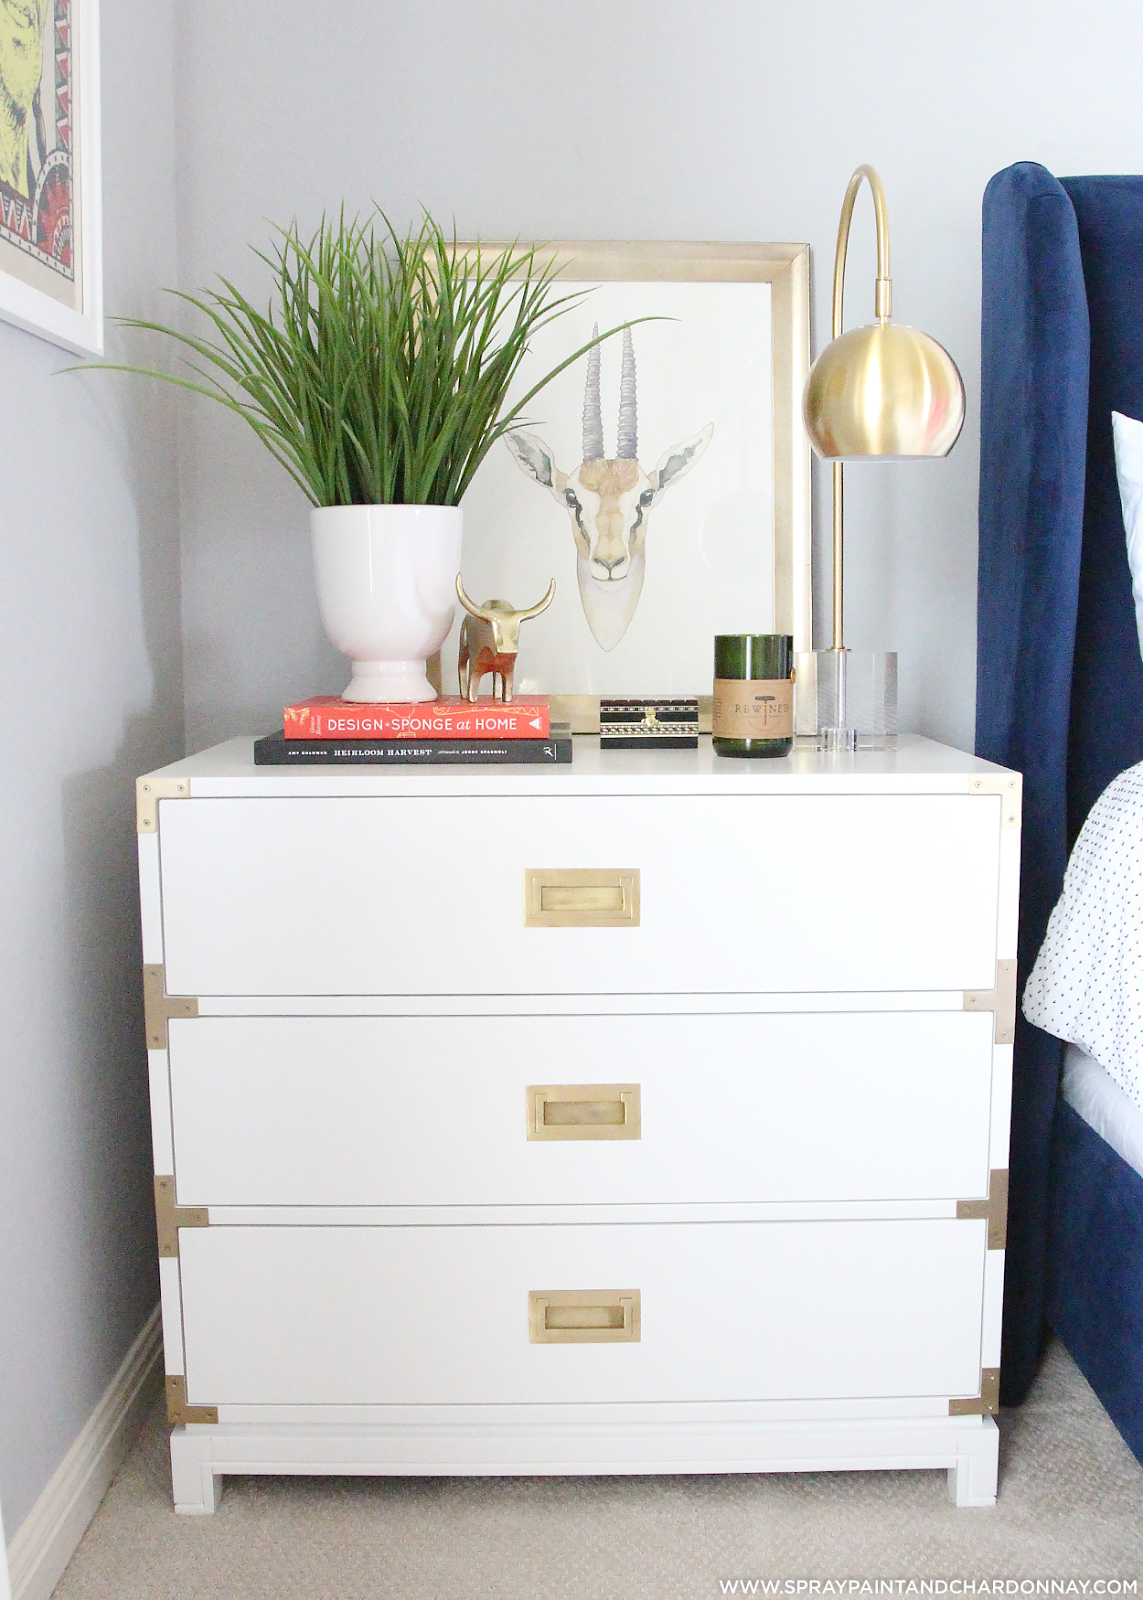 Carlyle Campaign Dresser in white and styled Project by Spray